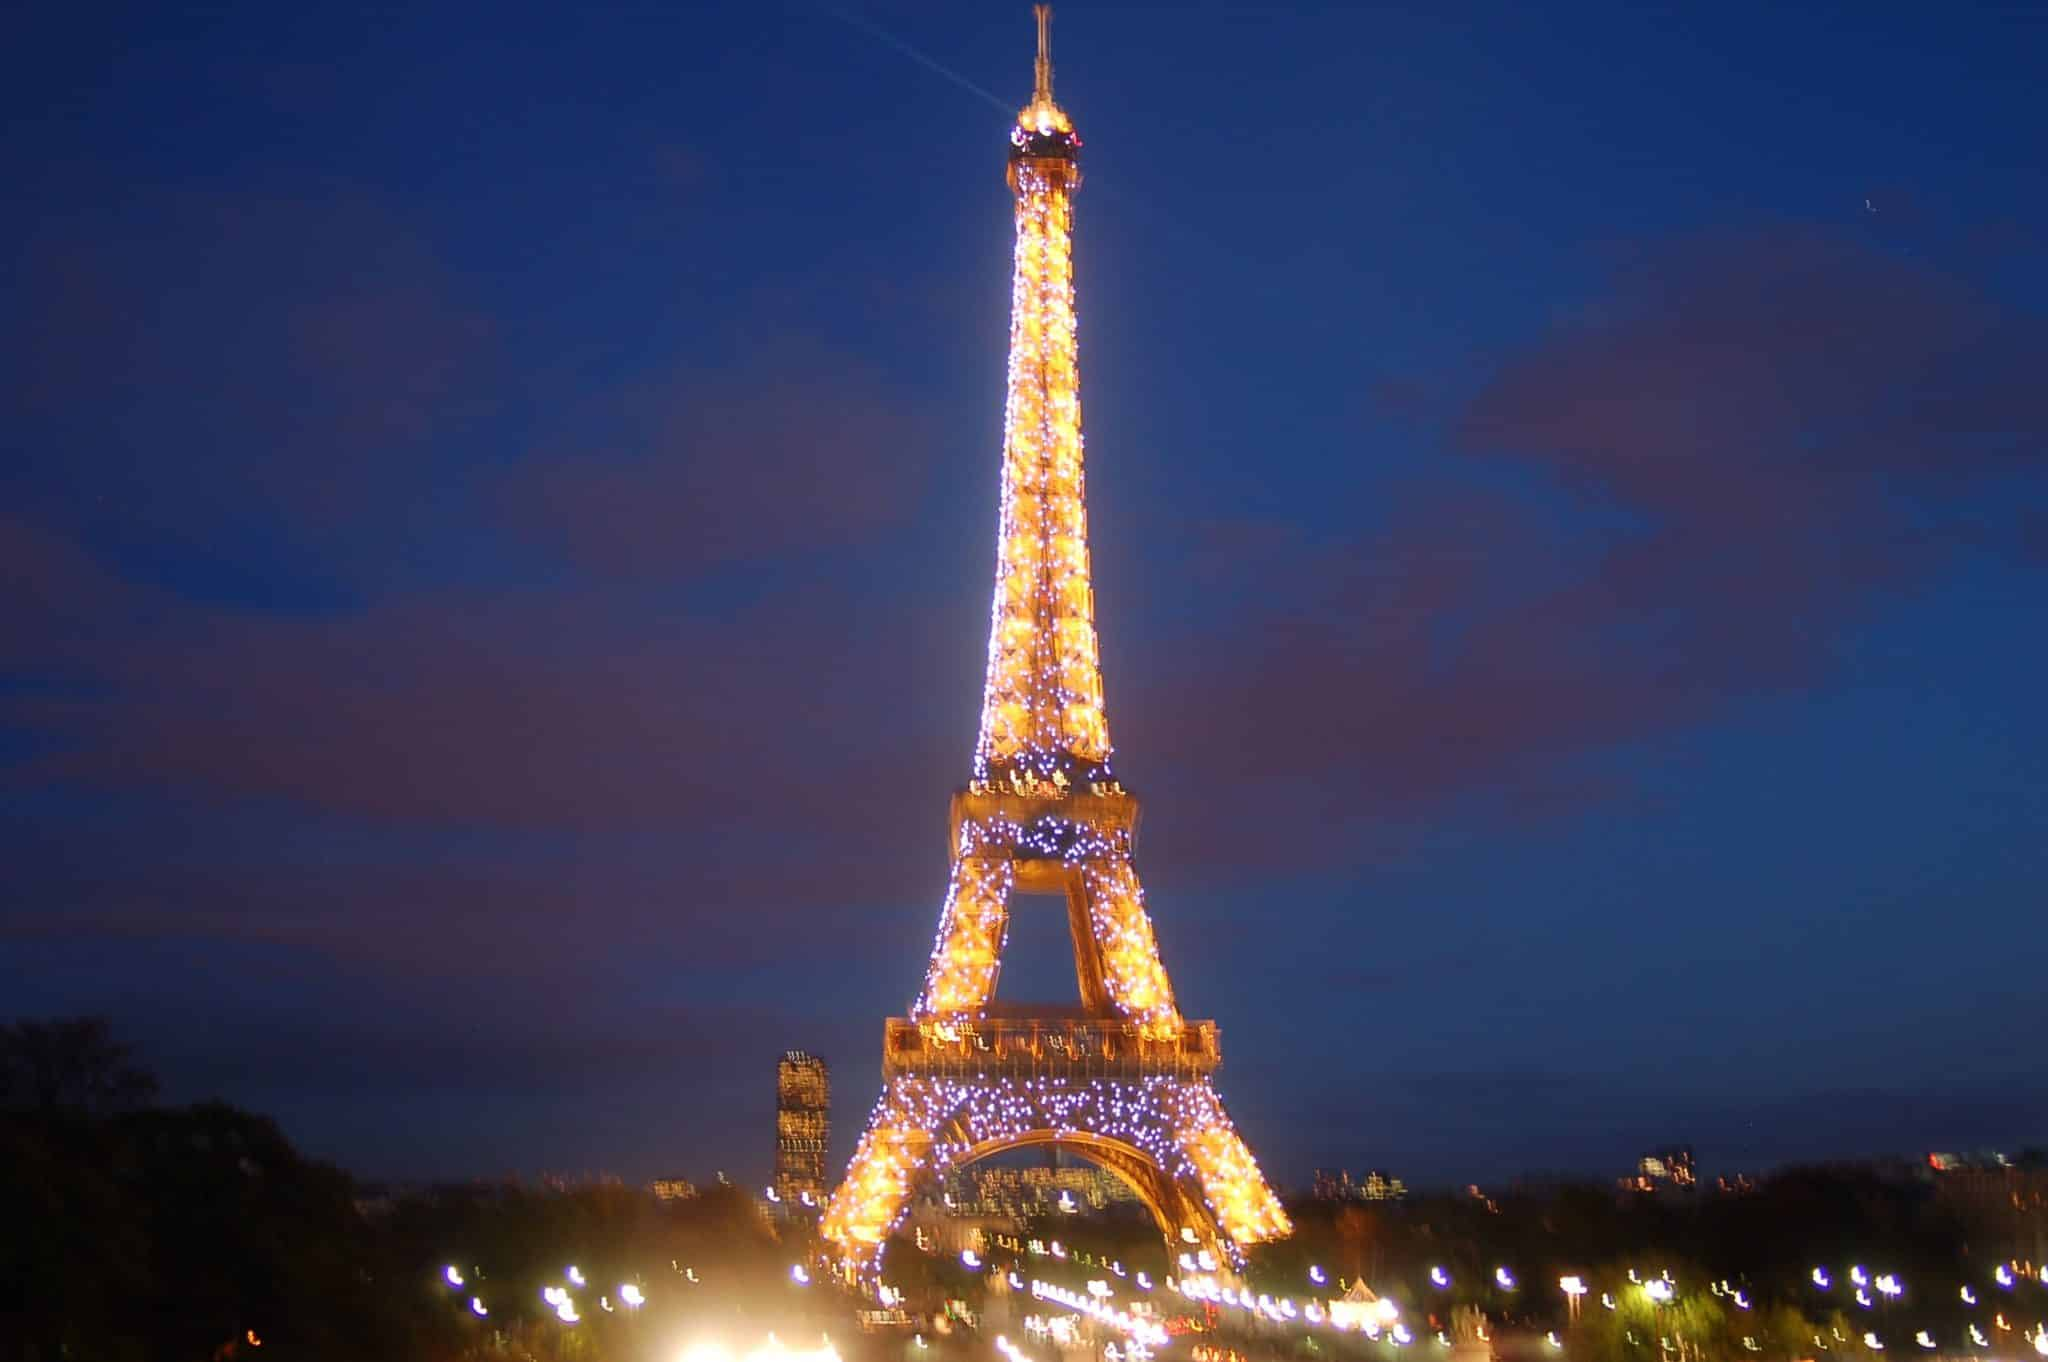 Twilight Breaking Dawn Wallpaper For Iphone Eiffel Tower Cultural Icon Of Paris France Found The World